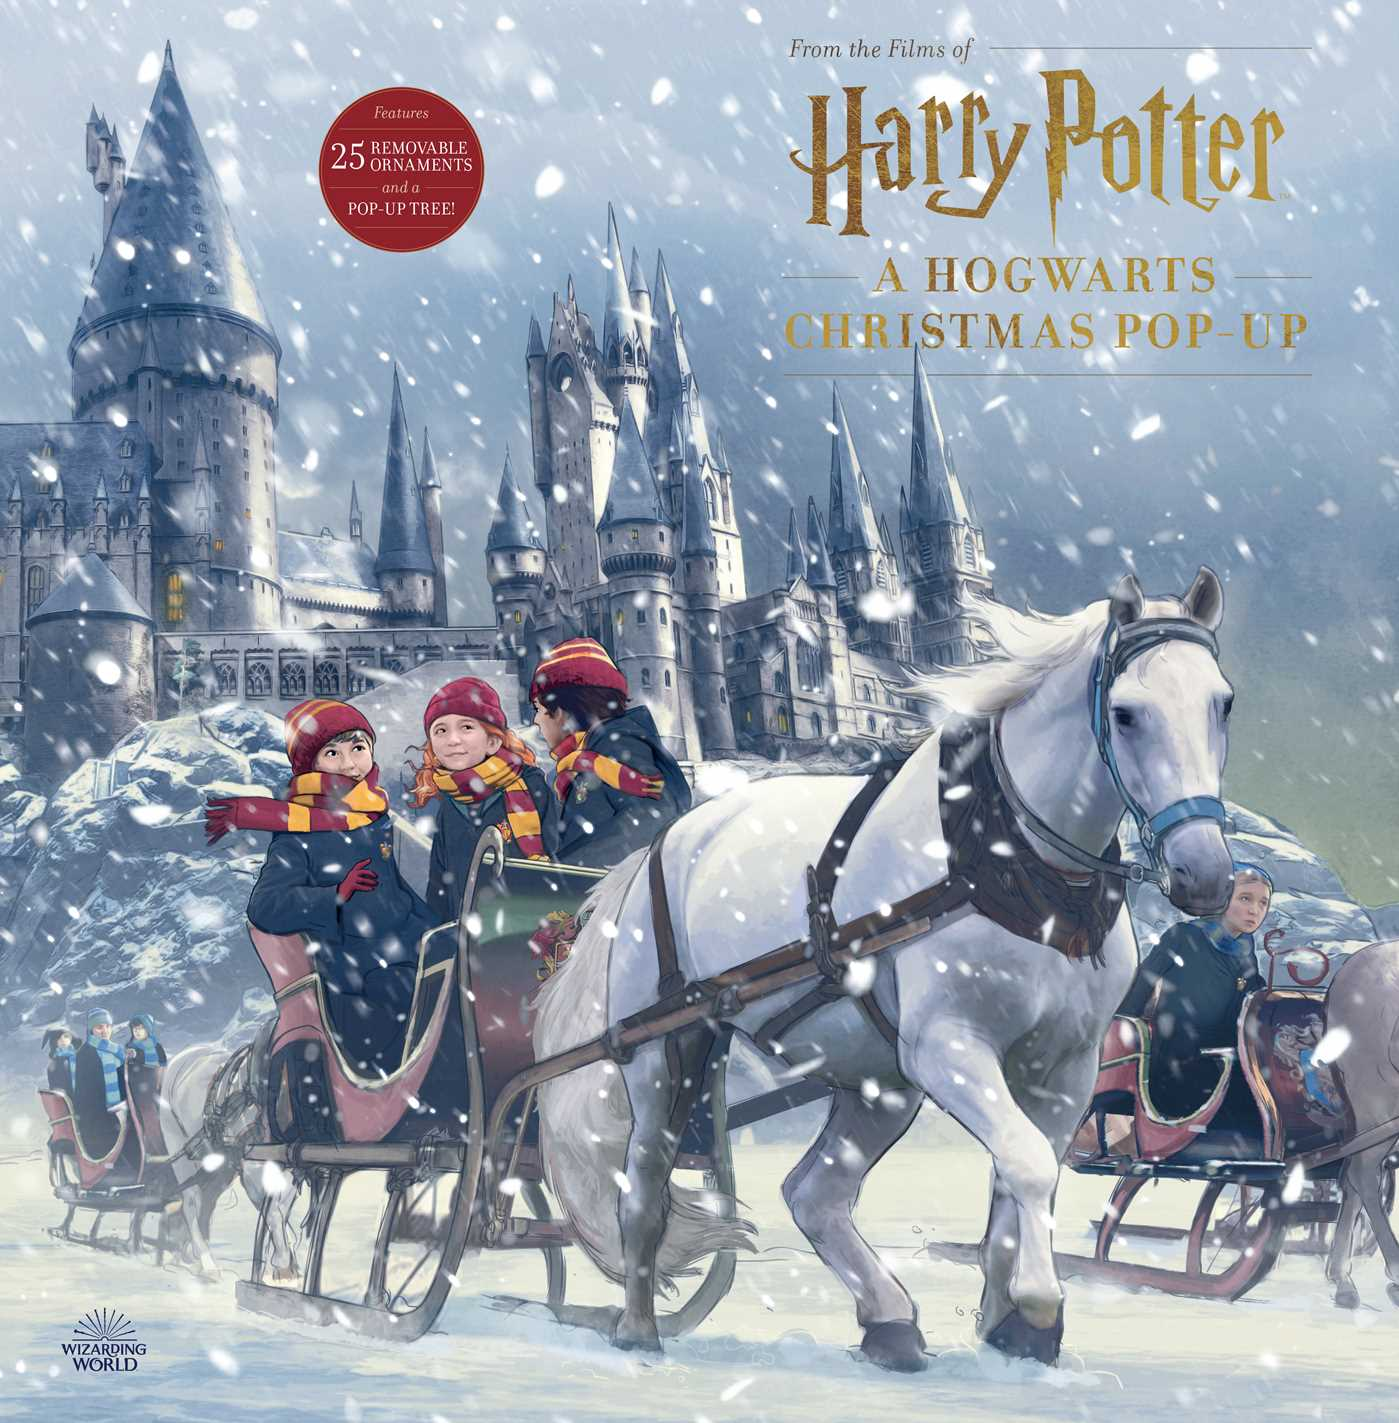 Hogwarts At Christmas 2021 Harry Potter A Hogwarts Christmas Pop Up Advent Calendar Book By Insight Editions Official Publisher Page Simon Schuster